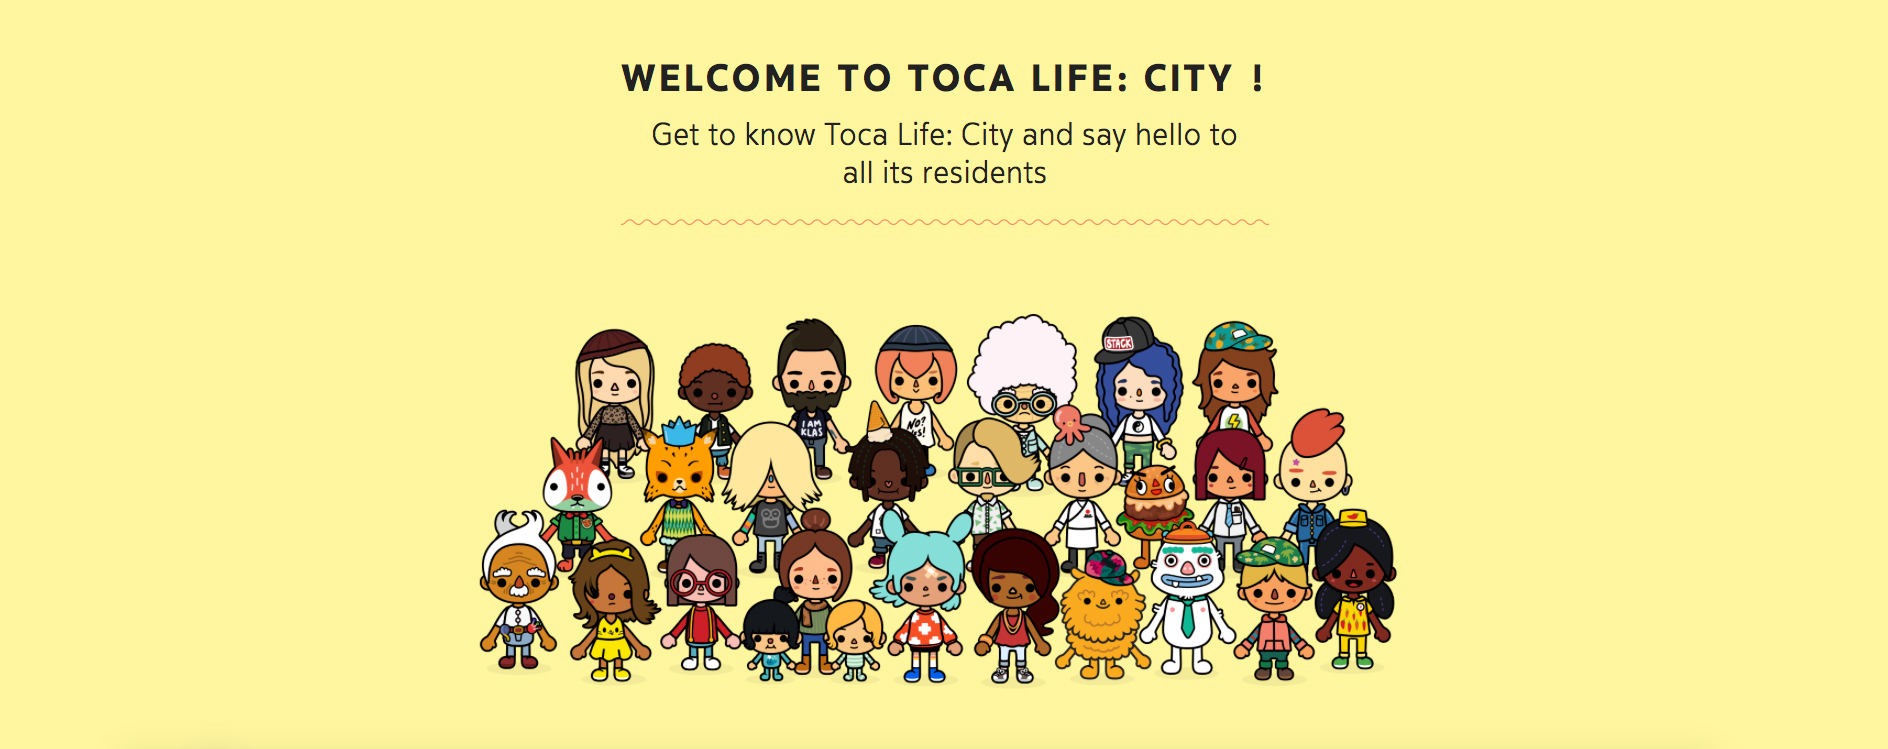 Two great apps for kids, Toca Life: City and Sago Mini Boats, receive nice updates